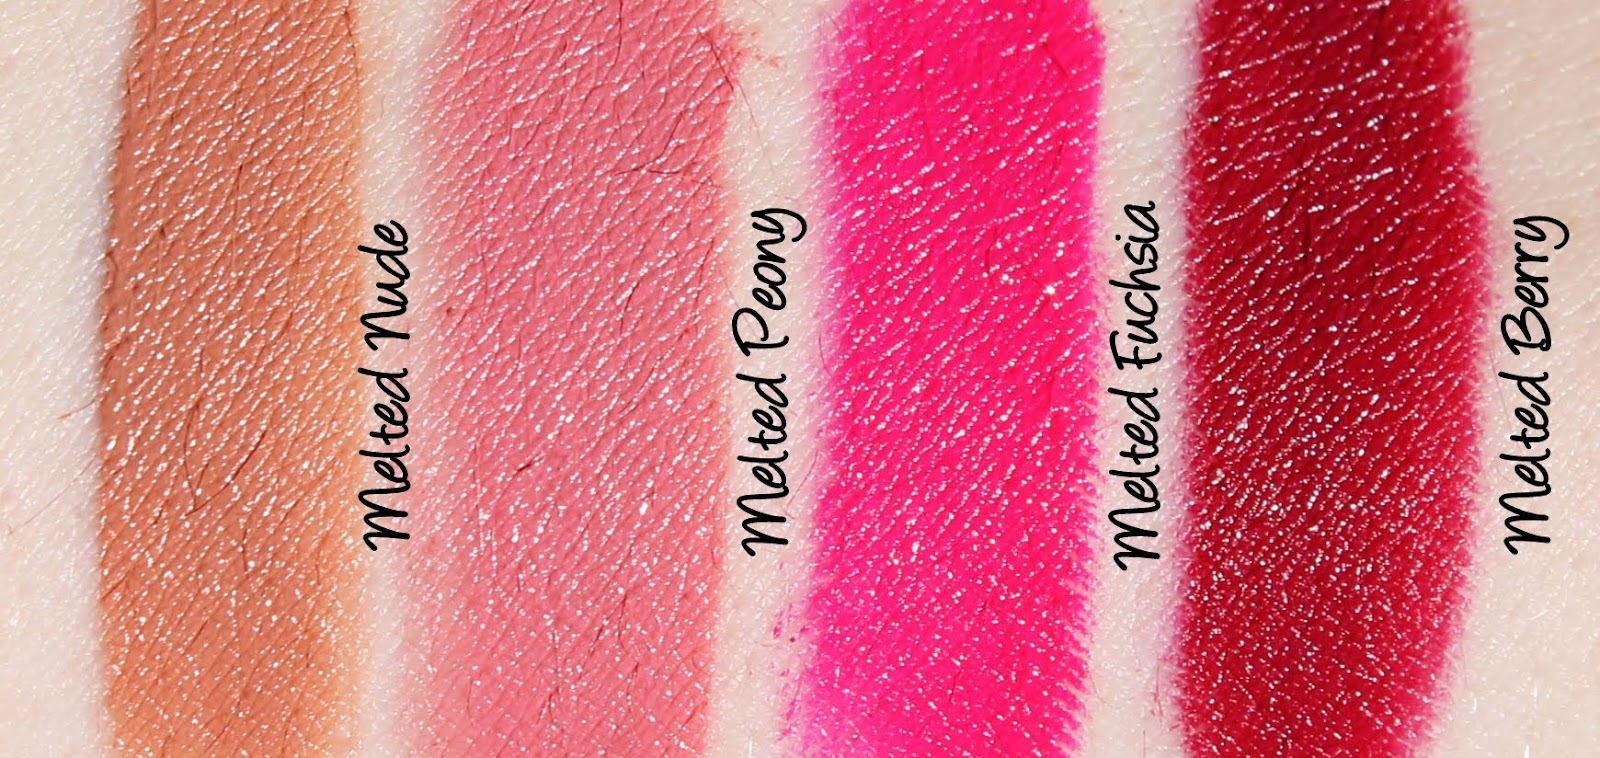 Too Faced Melted Kisses Set Swatches & Review